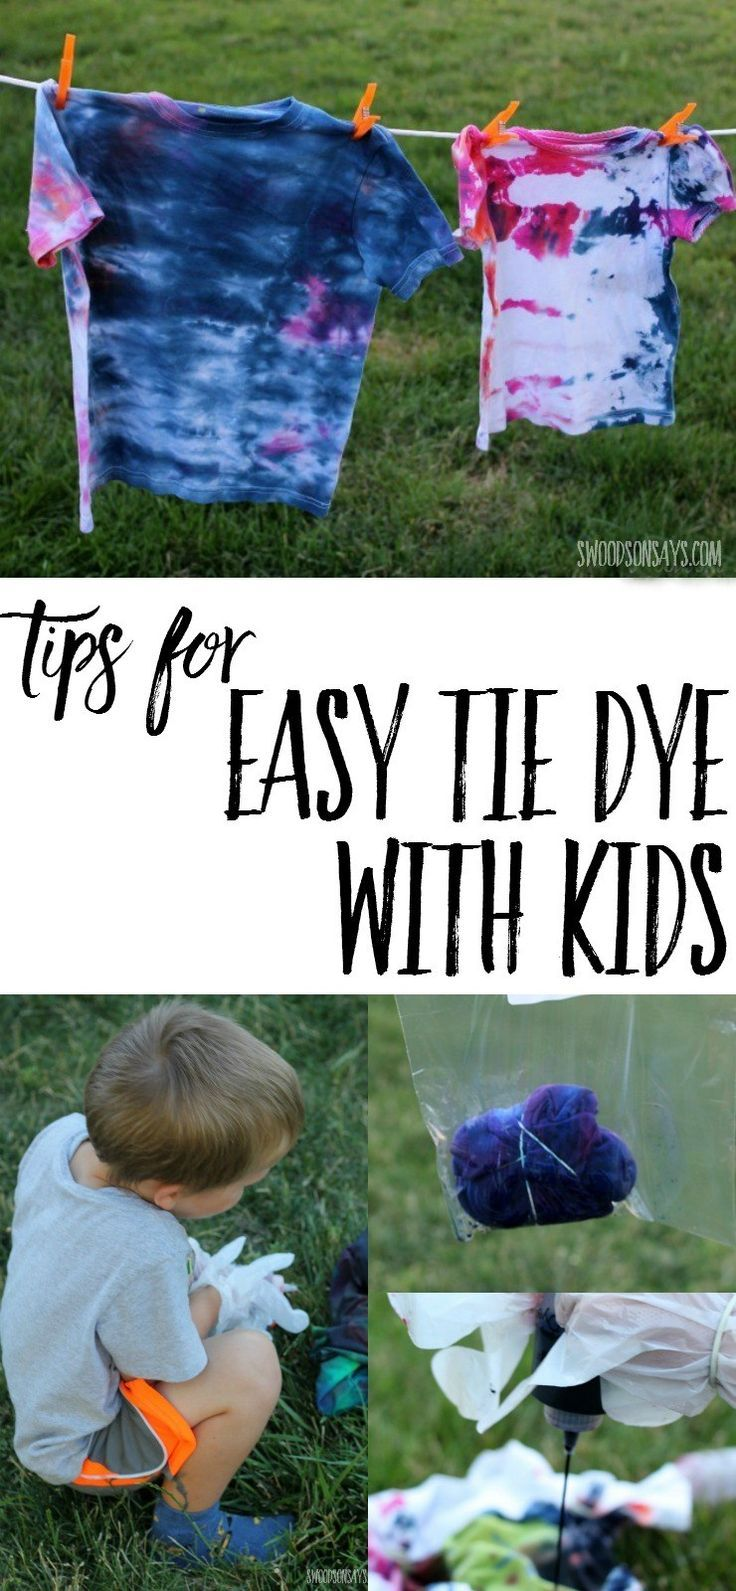 Easy Tie Dye Tips And Step By Step Instructions: 17 Best Images About Share Your Craft On Pinterest